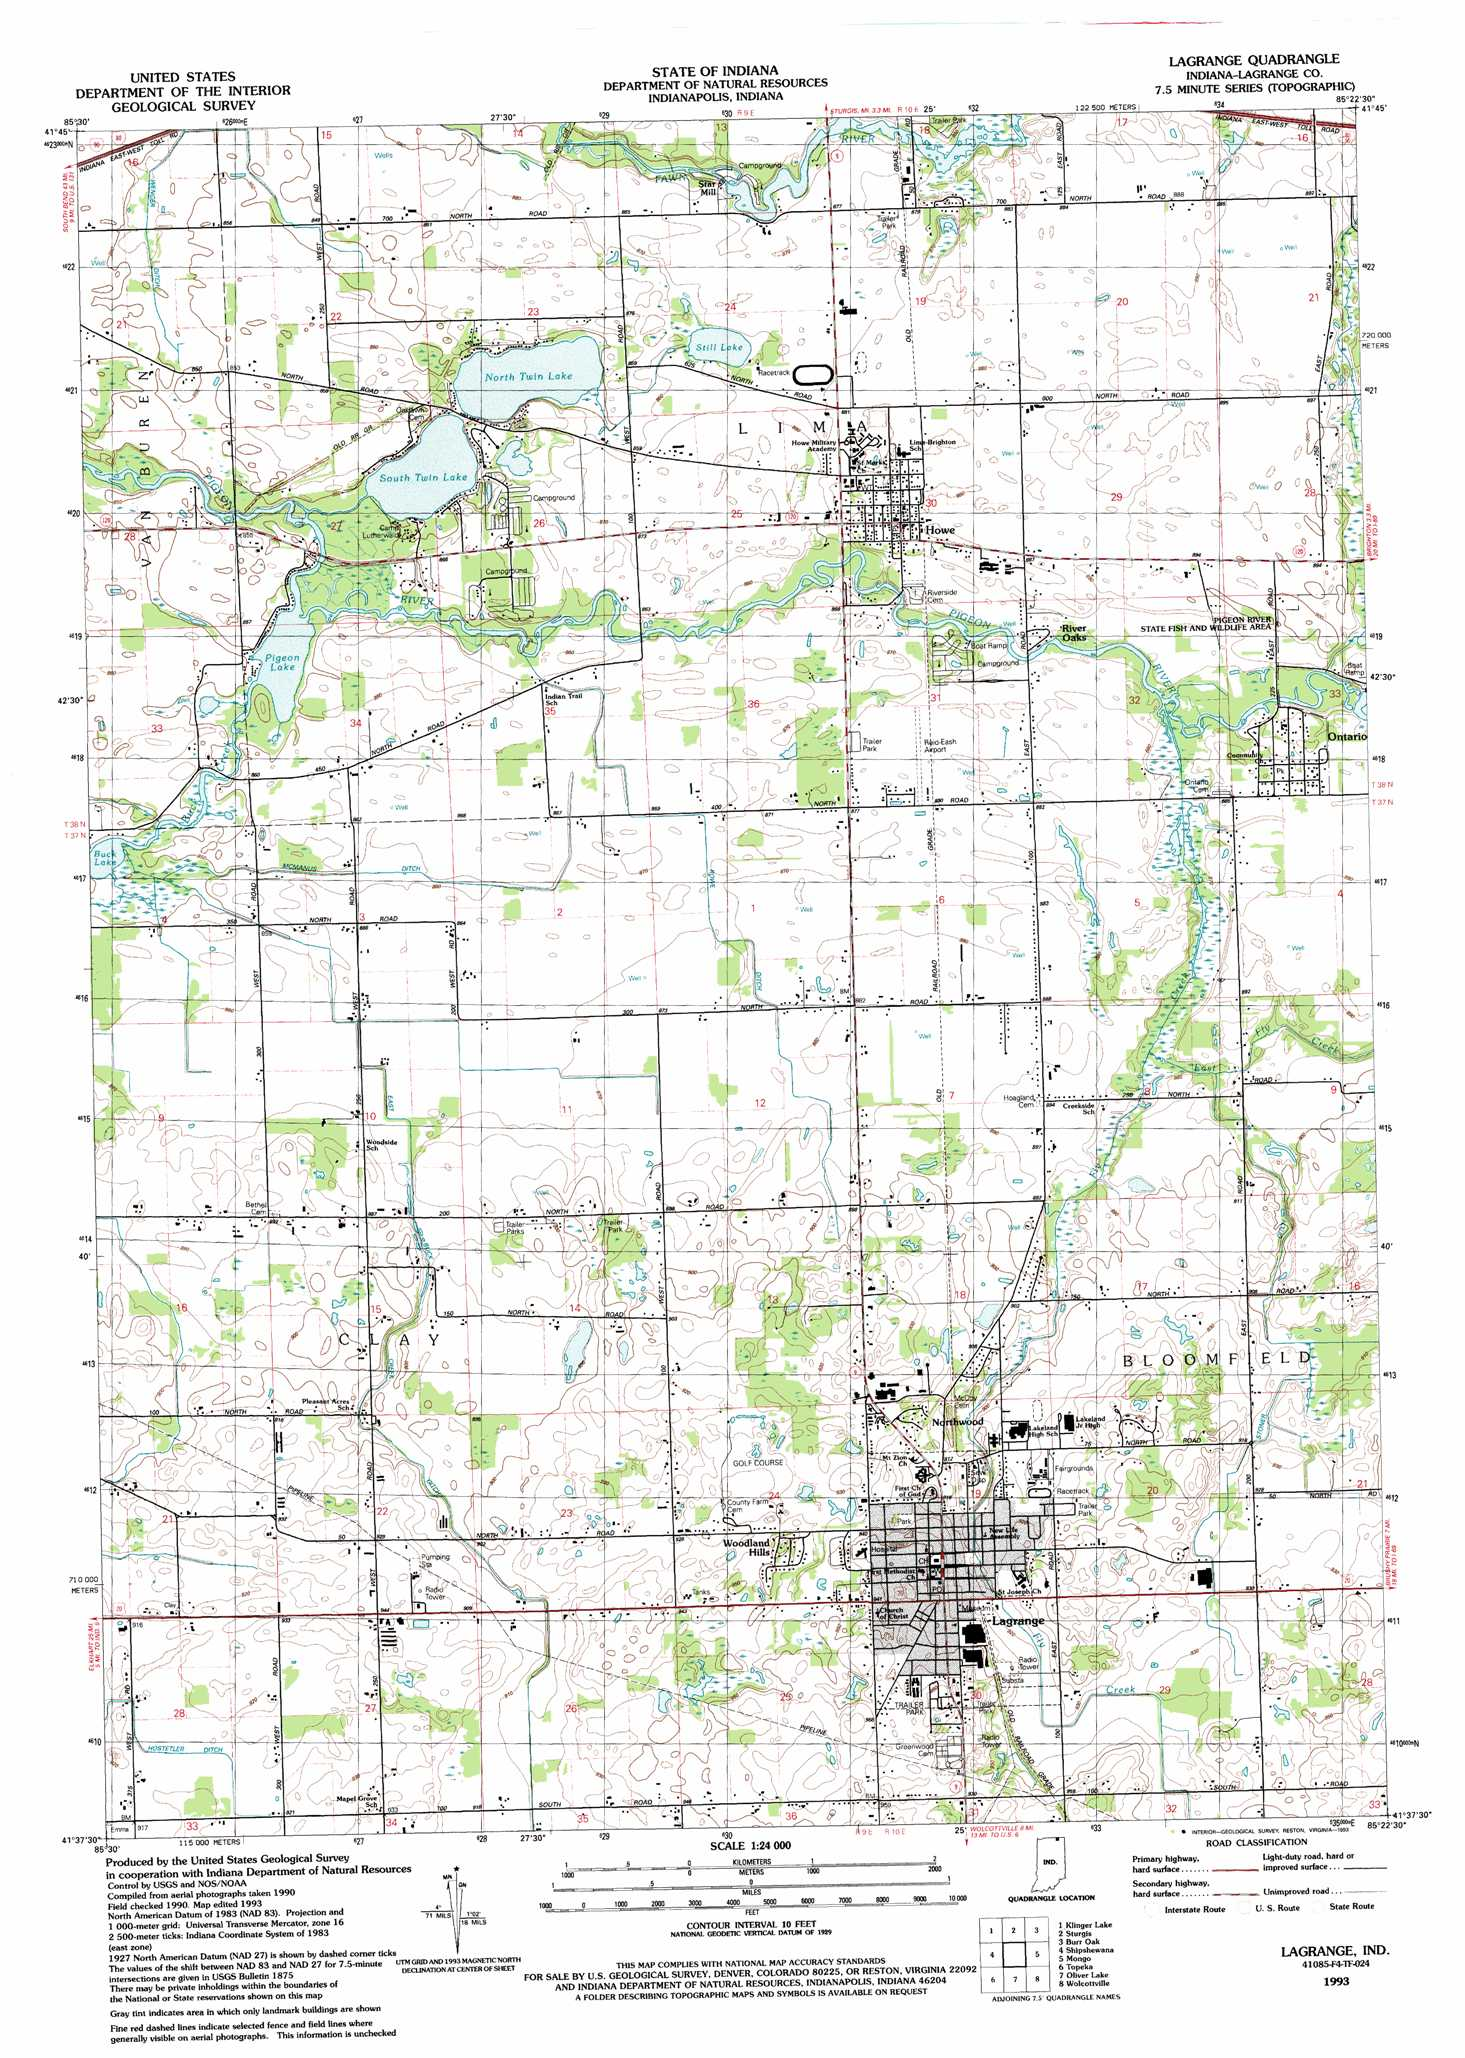 Lagrange topographic map, IN - USGS Topo Quad 41085f4 on indiana division of reclamation, kentucky geological survey maps, wyoming department of transportation maps,